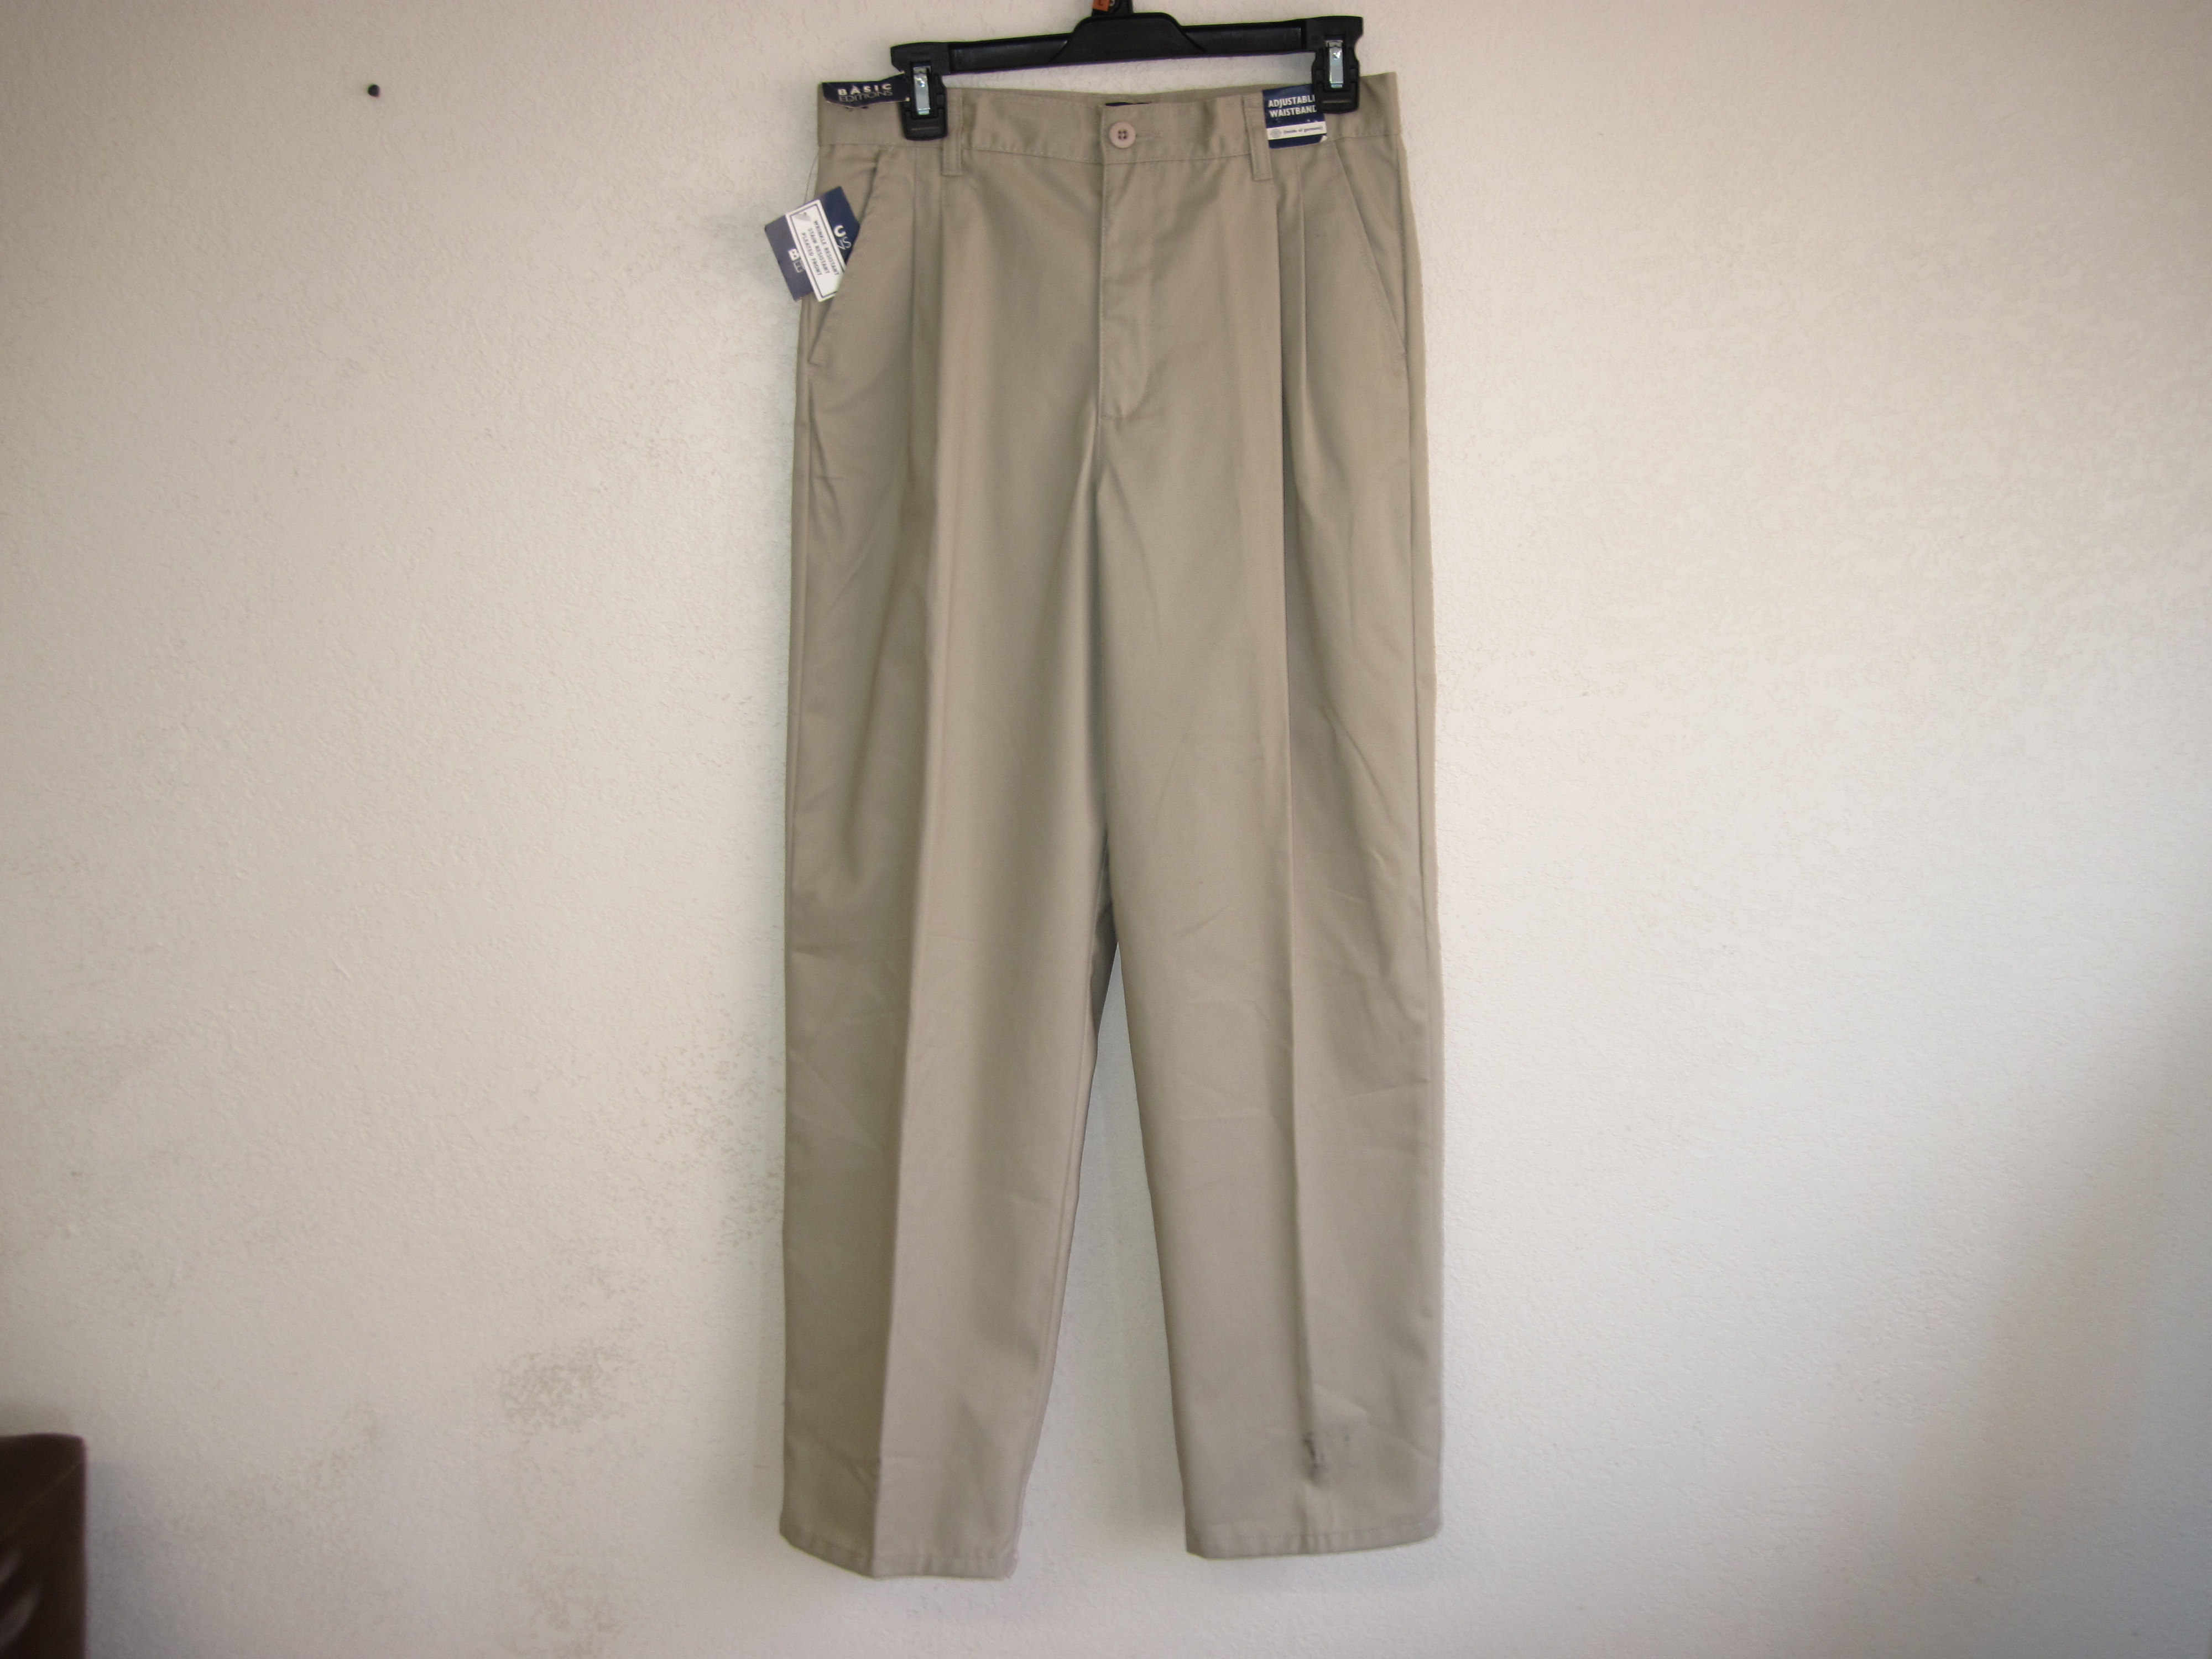 Basic Editions Sz 16R Boys Pleaded Pants (Tan)